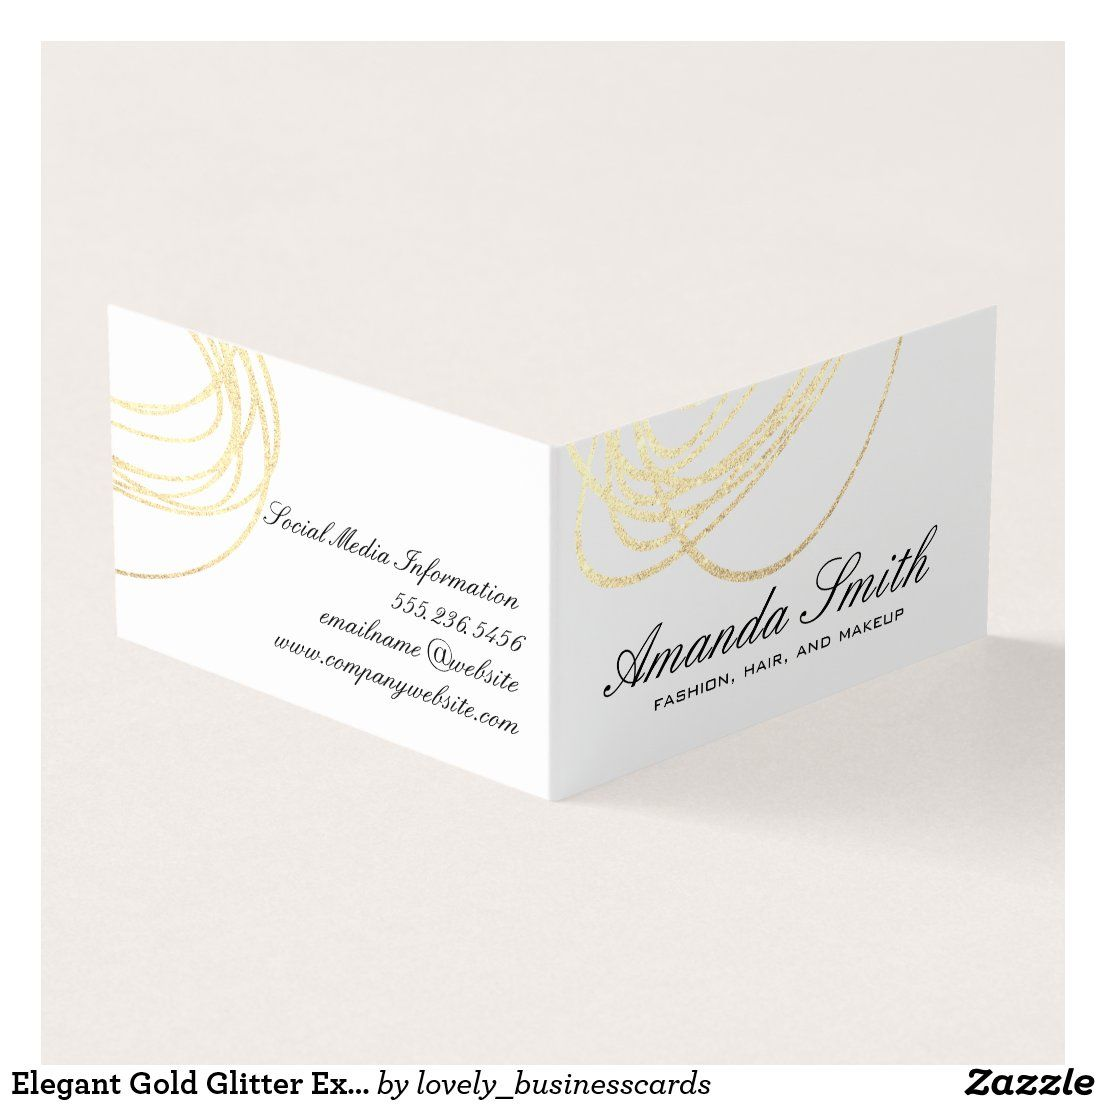 Create Your Own Folded Business Card Zazzle Com Folded Business Cards Business Card Design Professional Business Cards